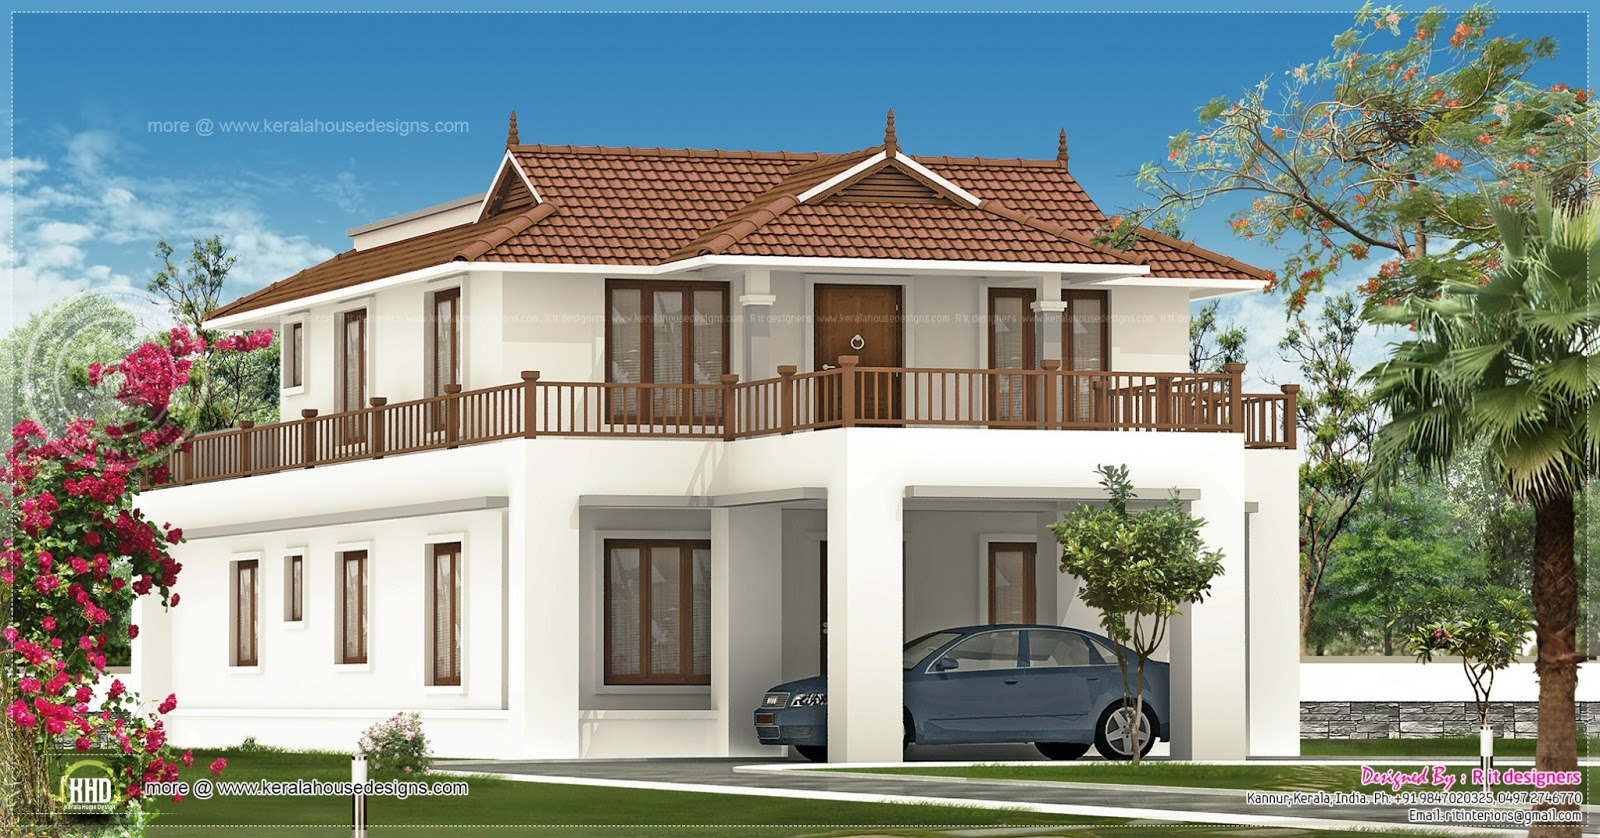 2820 square feet house exterior design home kerala plans for House outside design in india